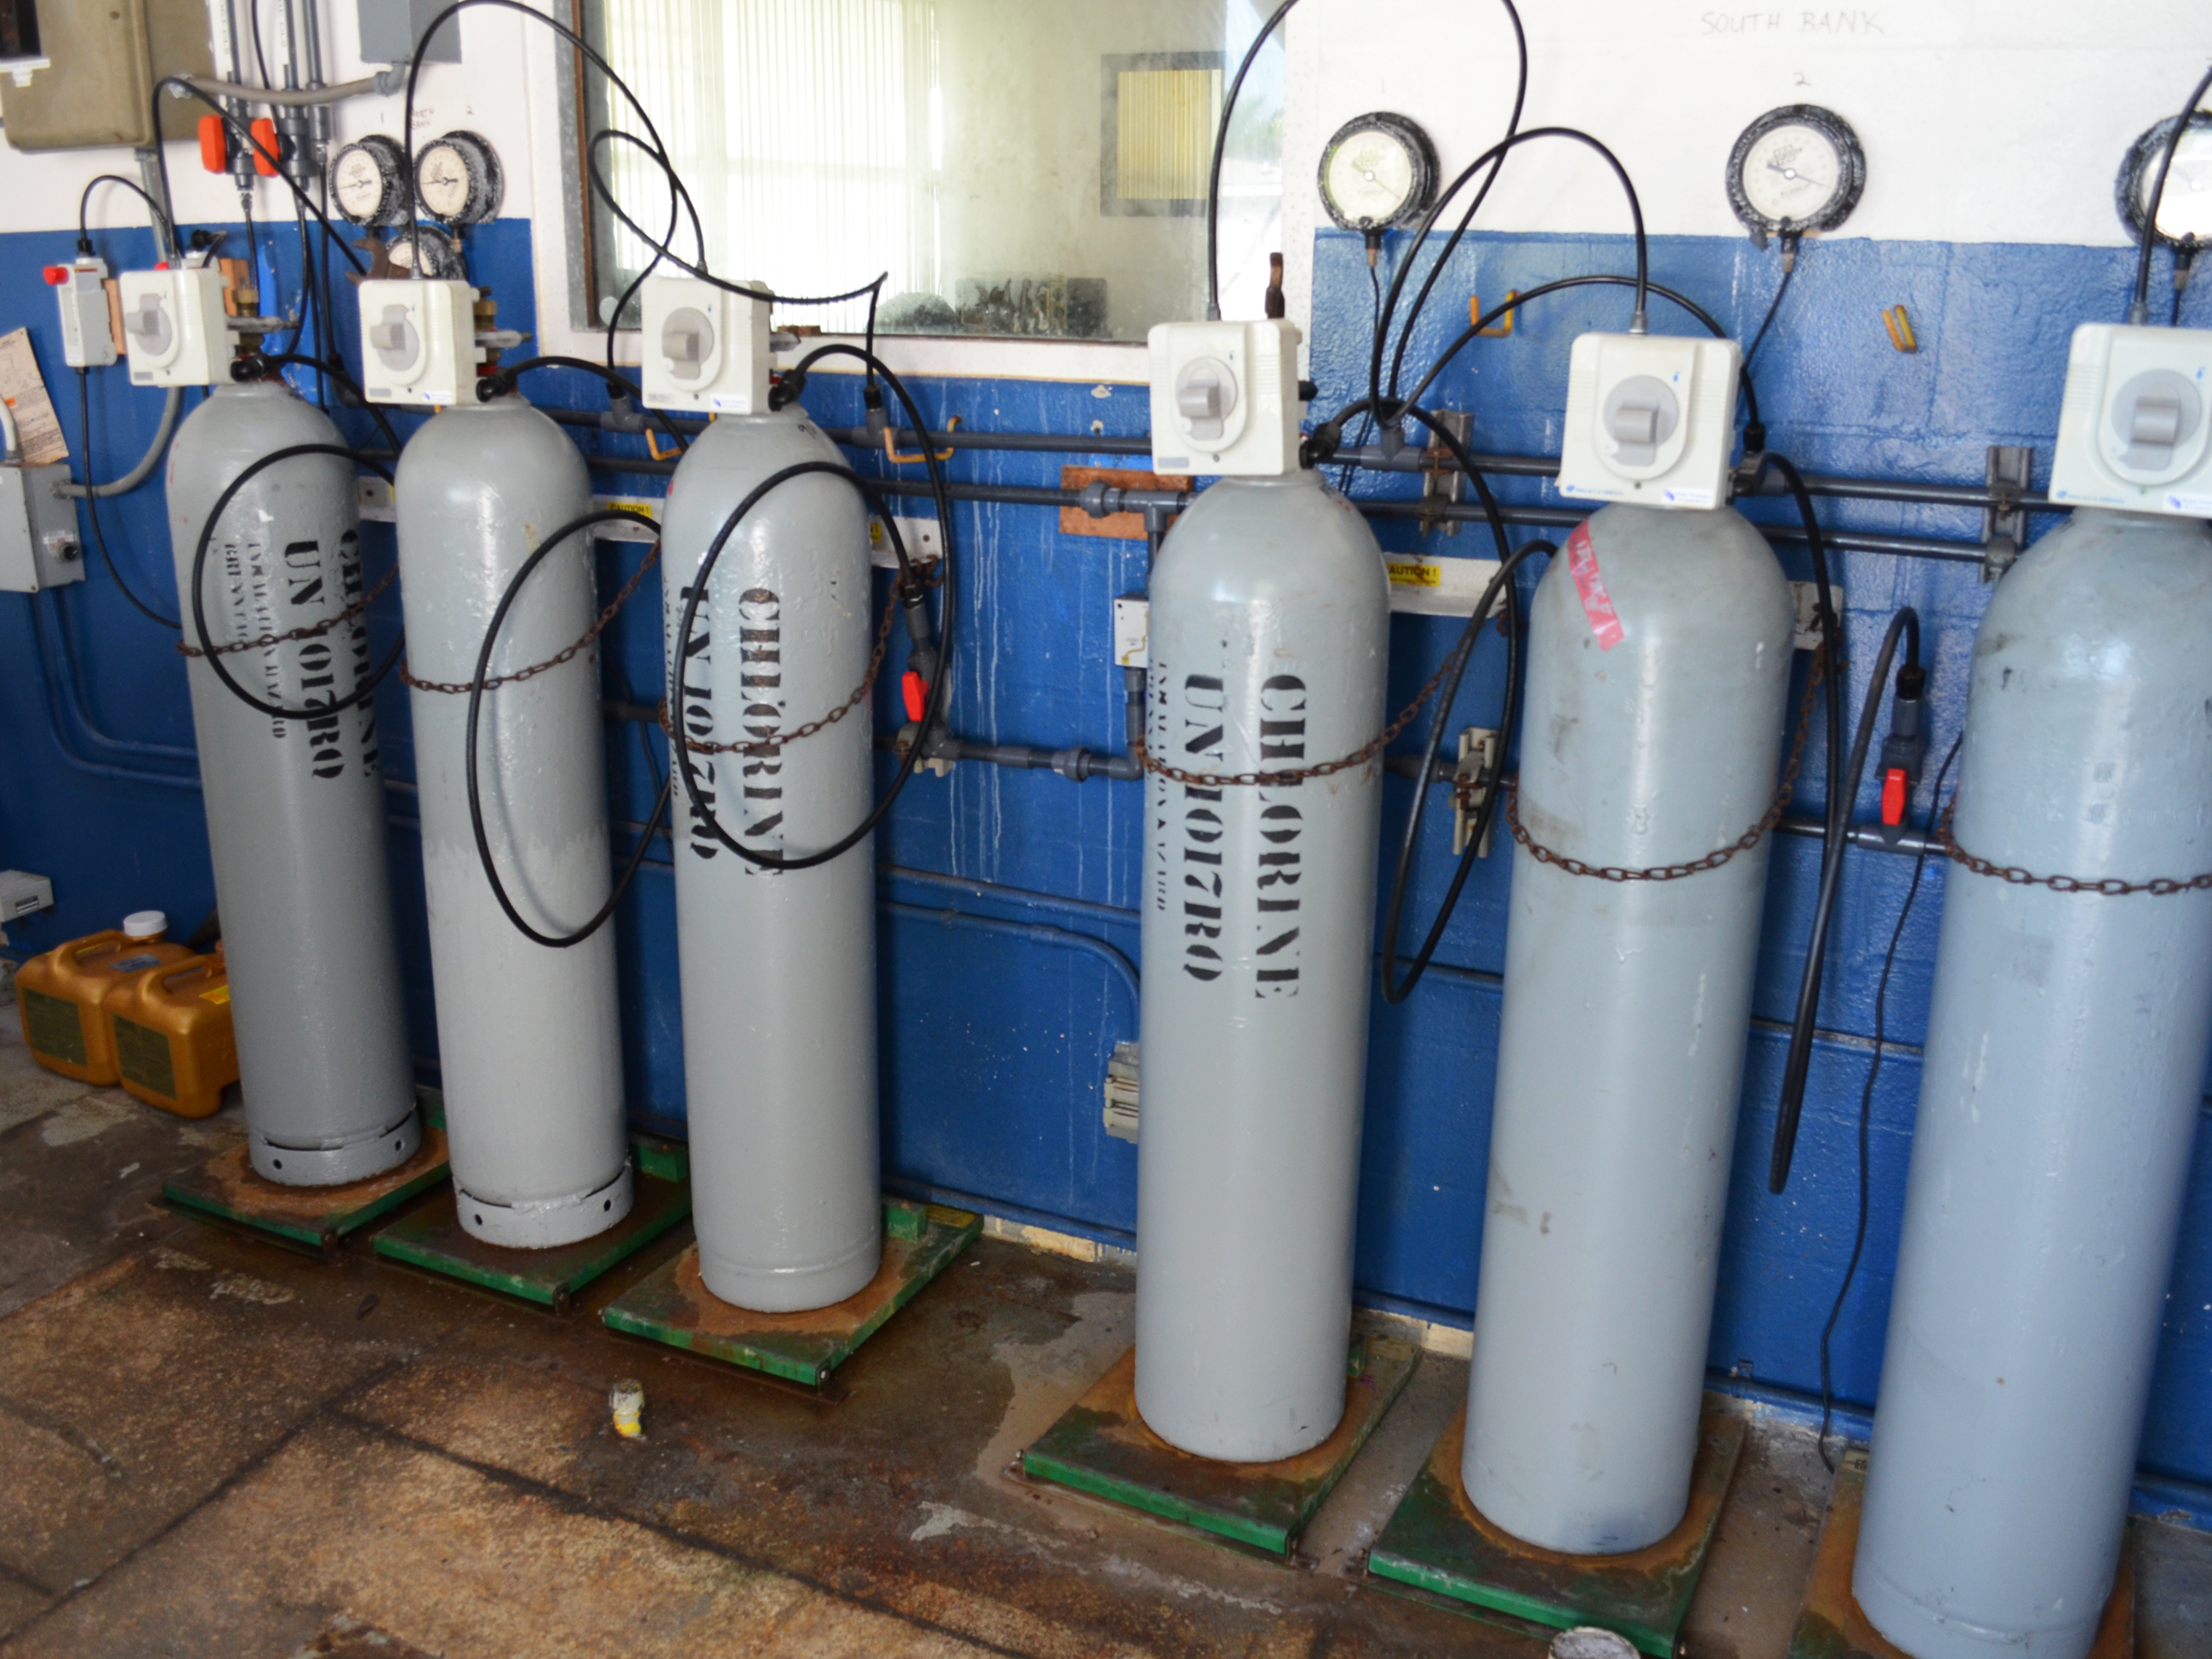 Three silver-colored canisters of chlorine hooked up to the water supply in the water plant.